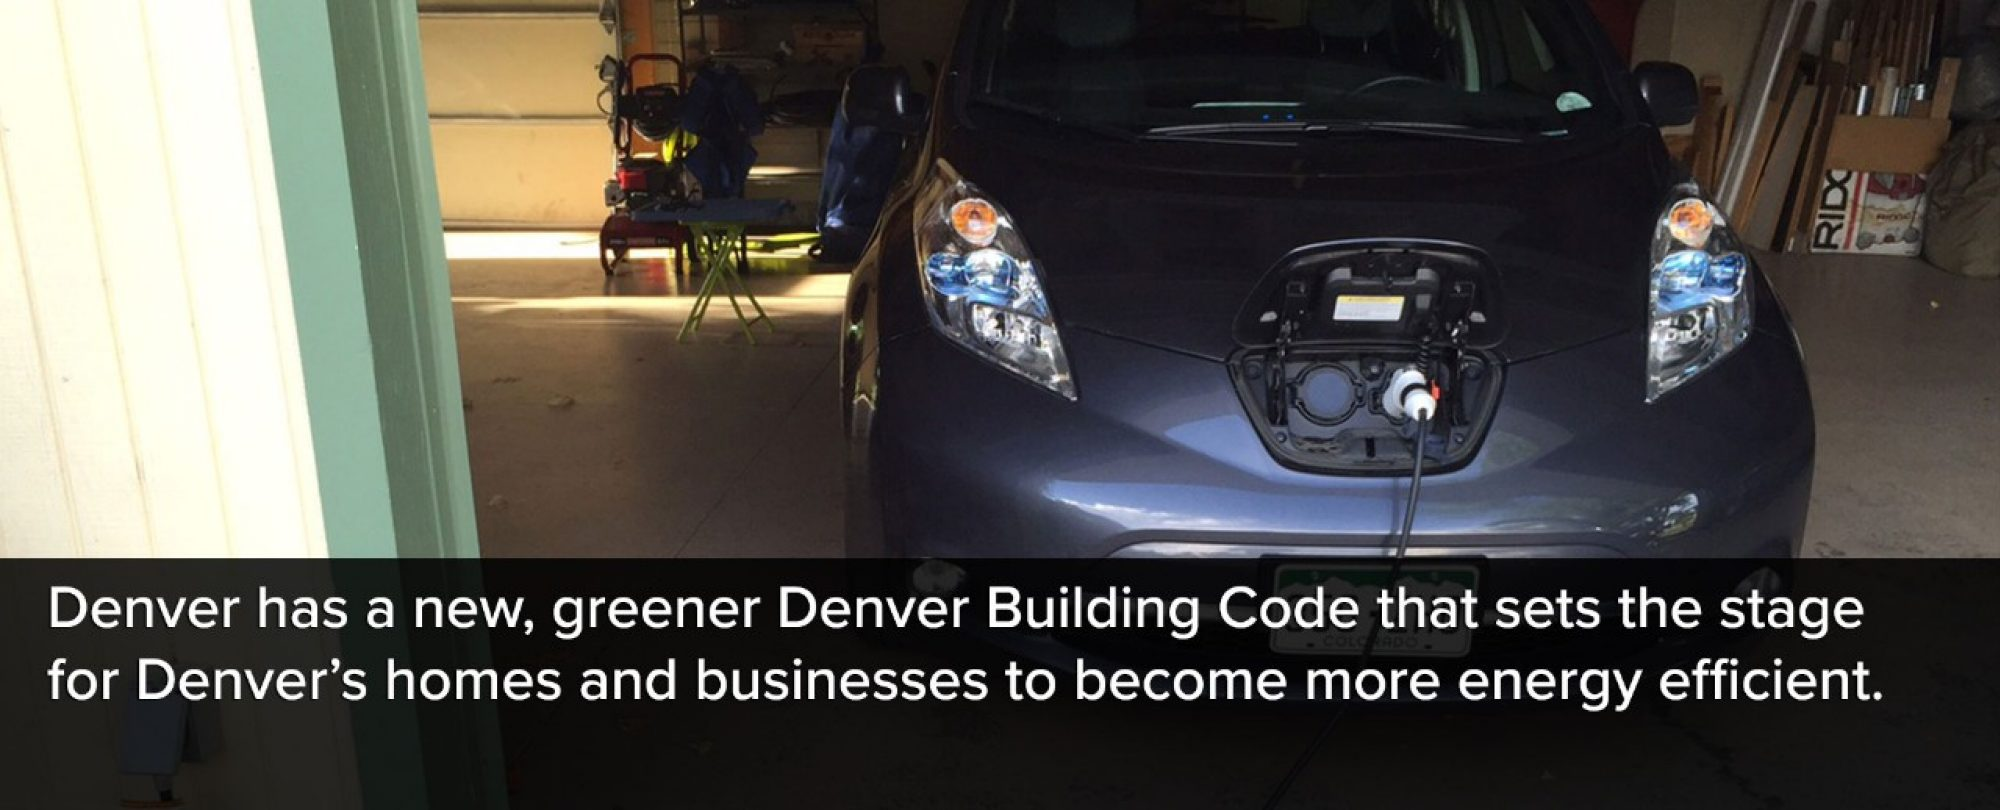 Photo of a plugged in electric car. Denver has a new, greener Denver Building Code that sets the stage for Dnever's homes and businesses to become more energy efficient